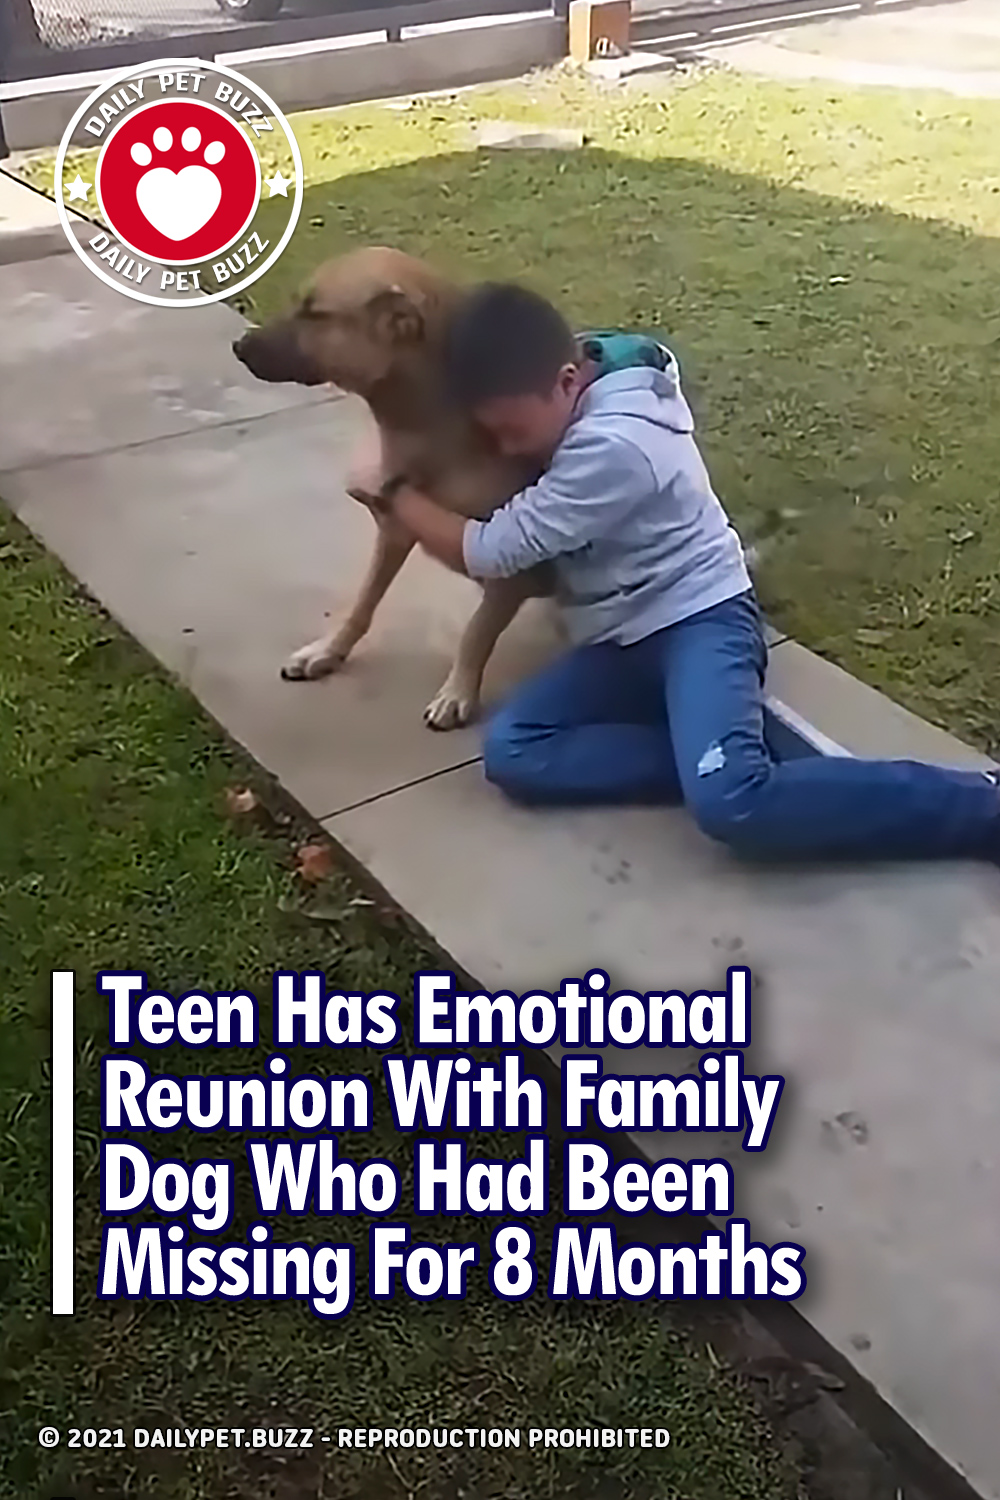 Teen Has Emotional Reunion With Family Dog Who Had Been Missing For 8 Months